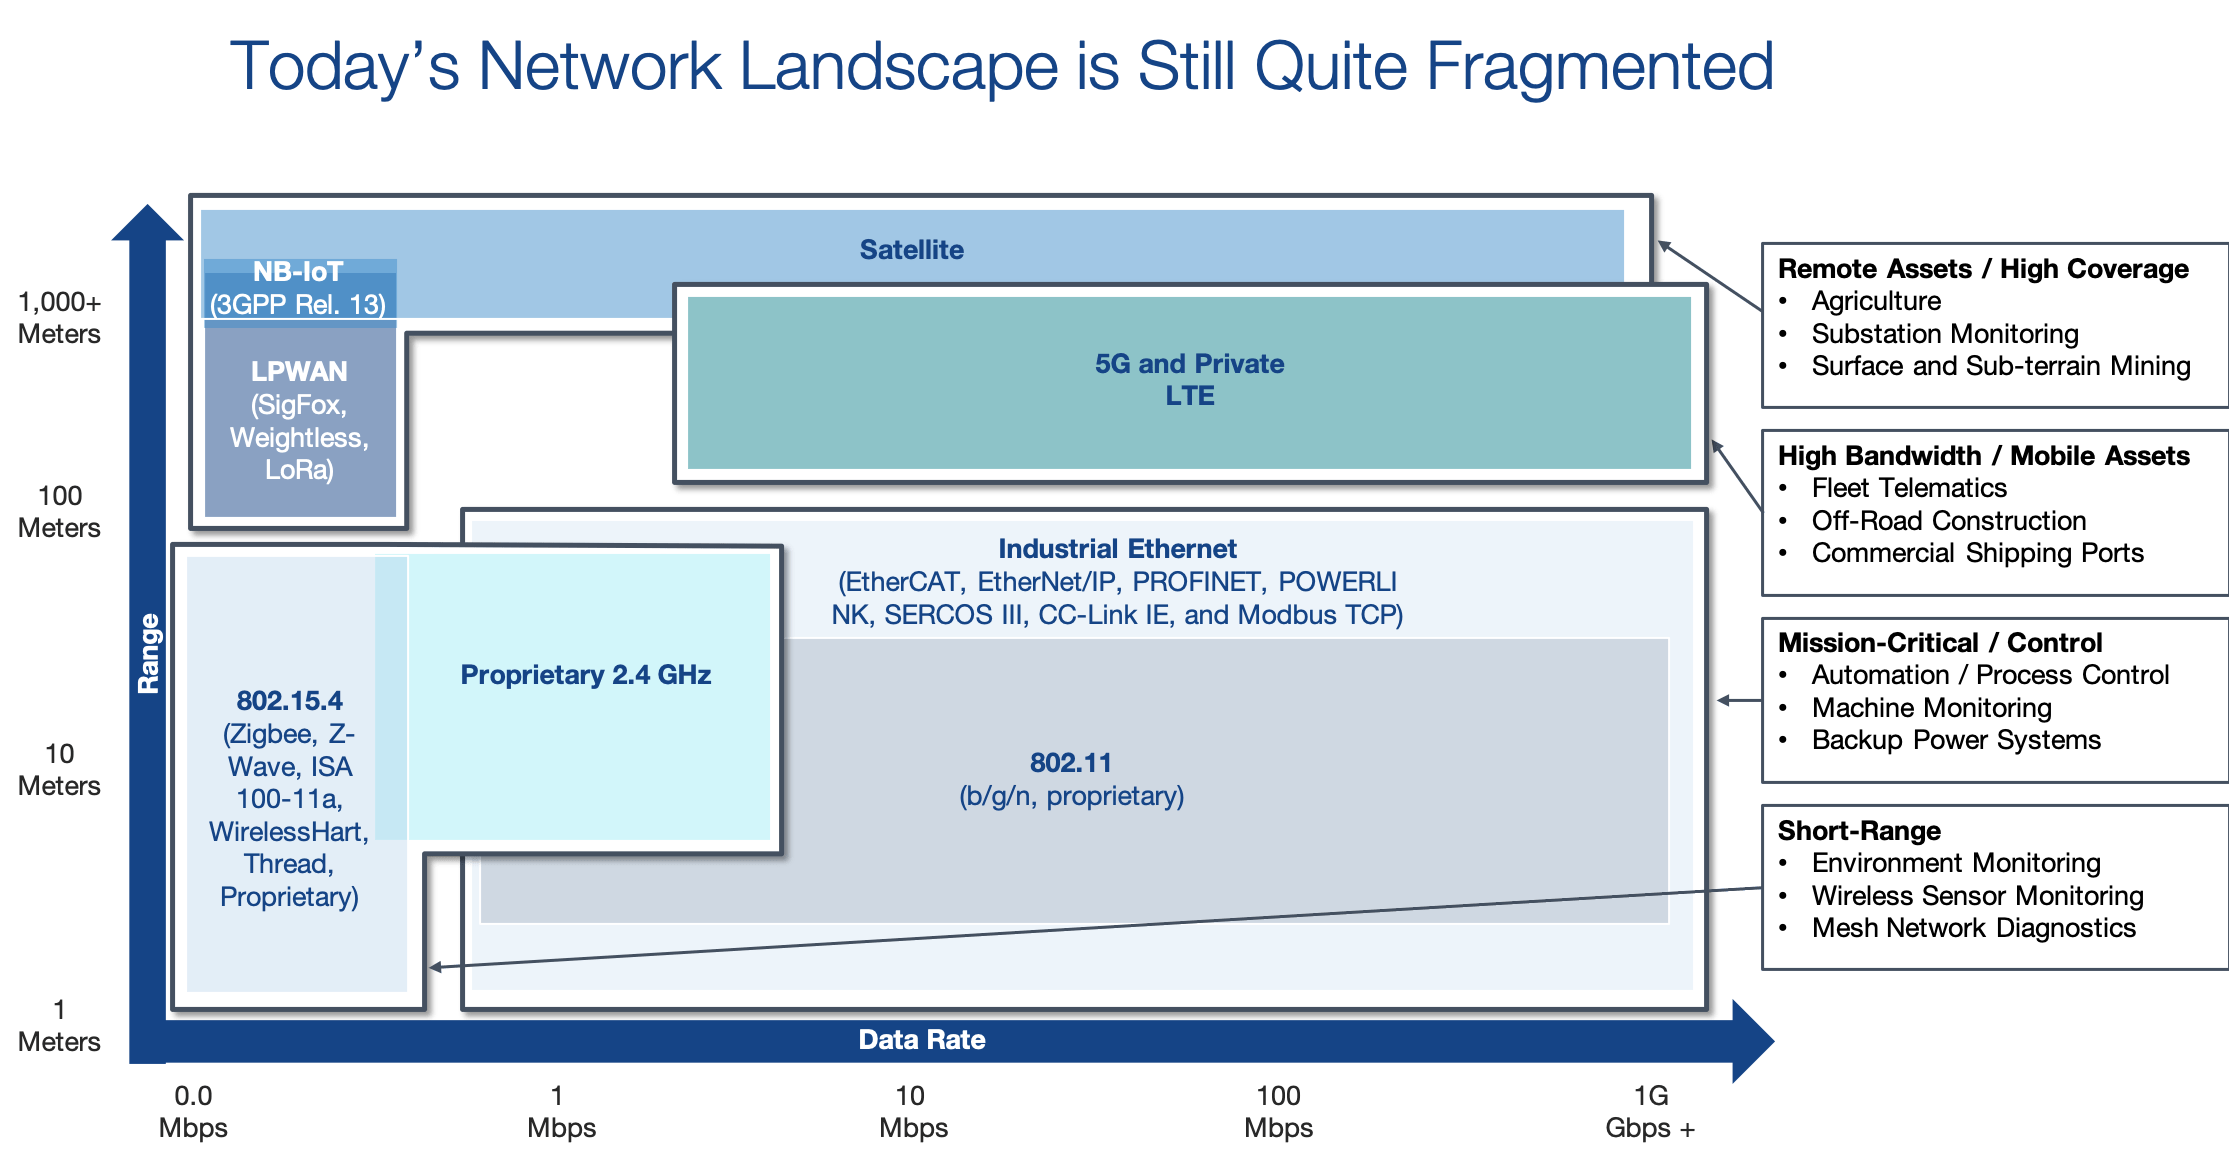 Today's network landscape is still quite fragmented